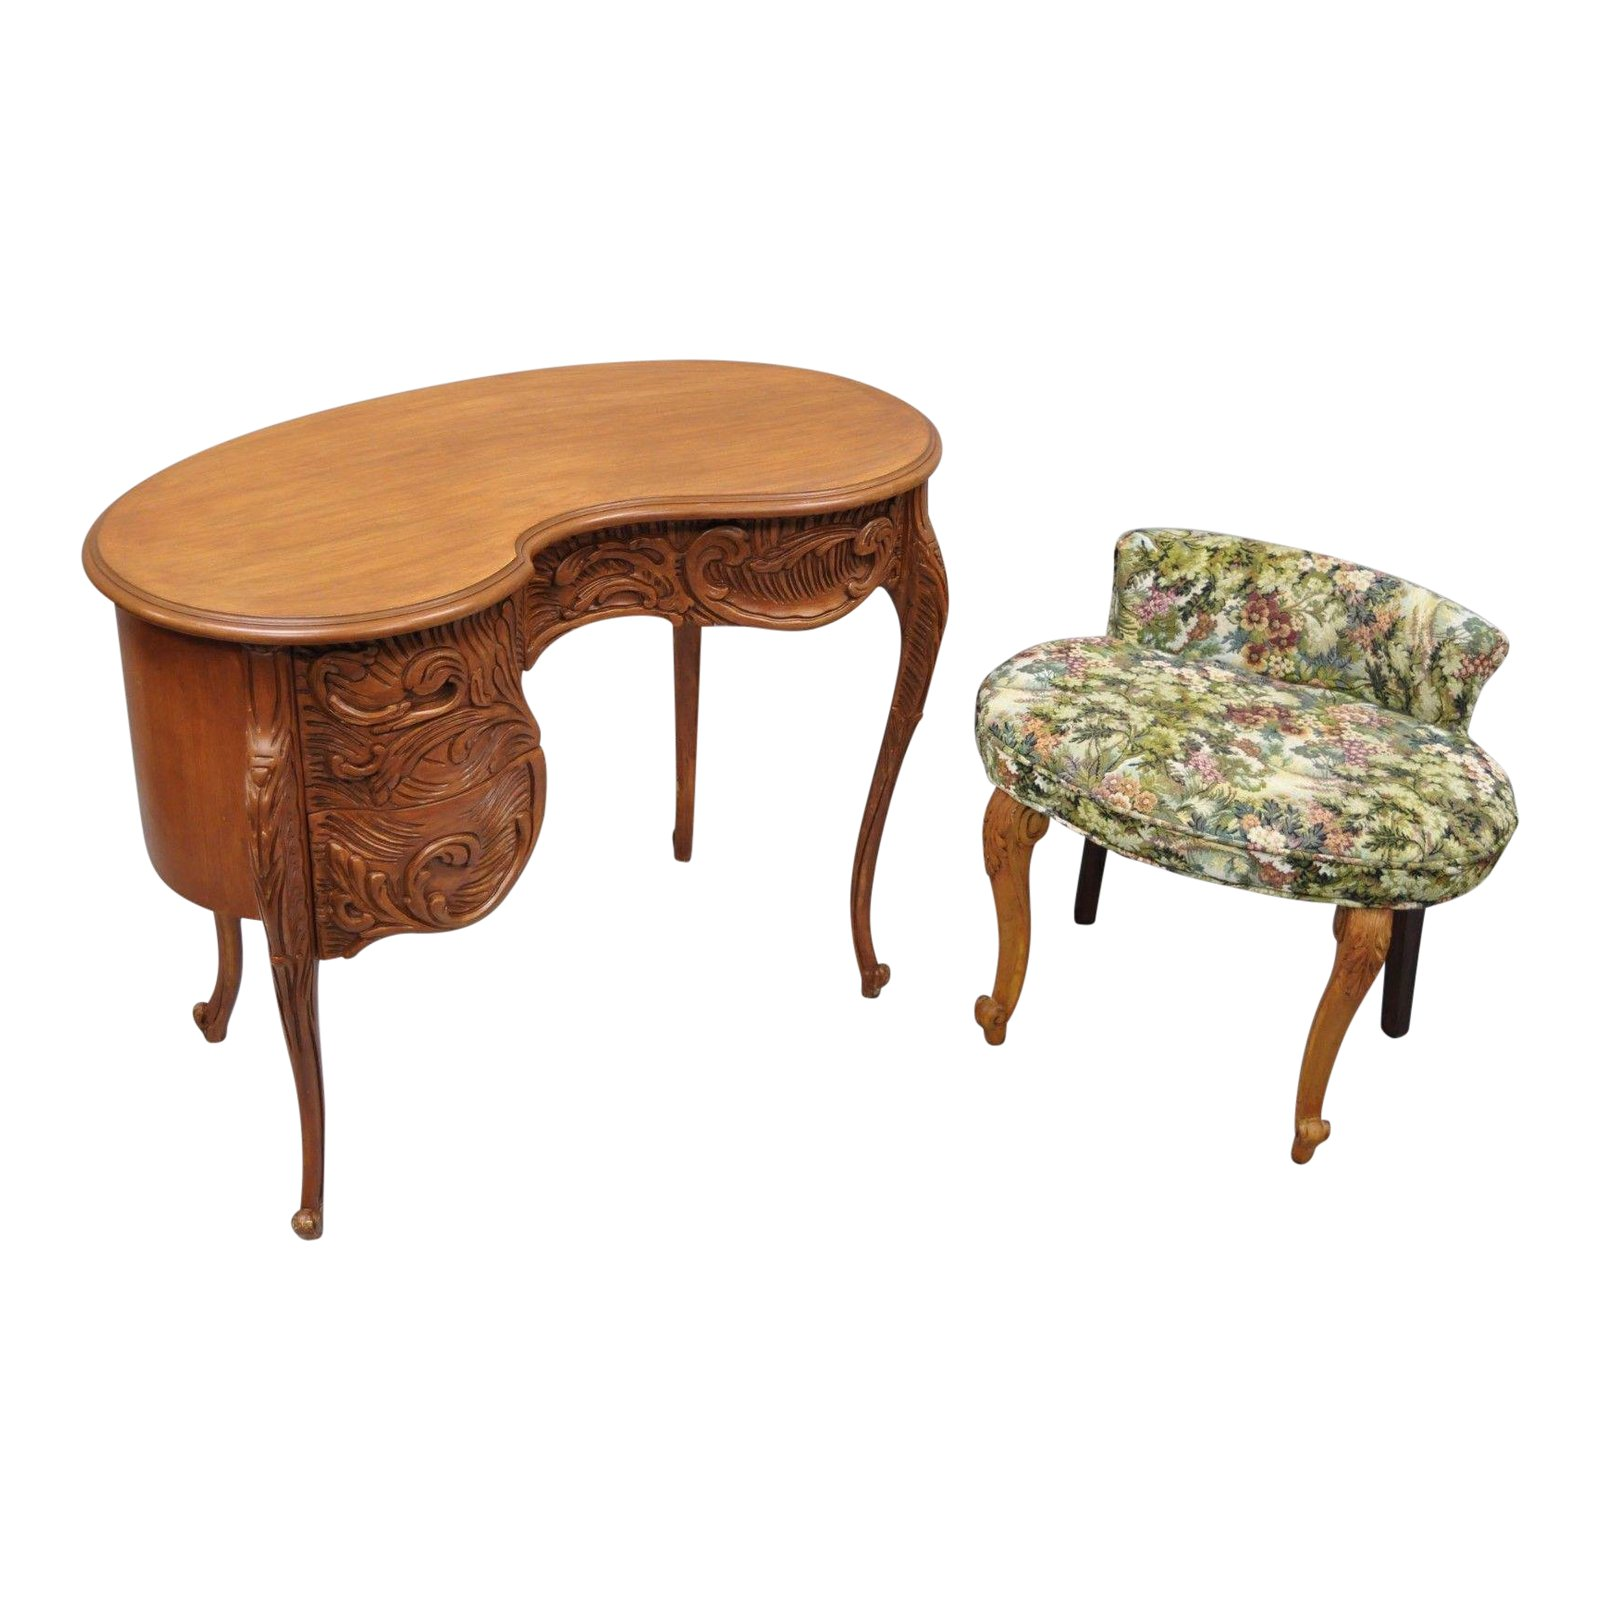 vintage french baroque style kidney bean shaped vanity desk bench and chair accent table chairish simple lamp bunnings outdoor furniture set acrylic chairs razer ouroboros gaming